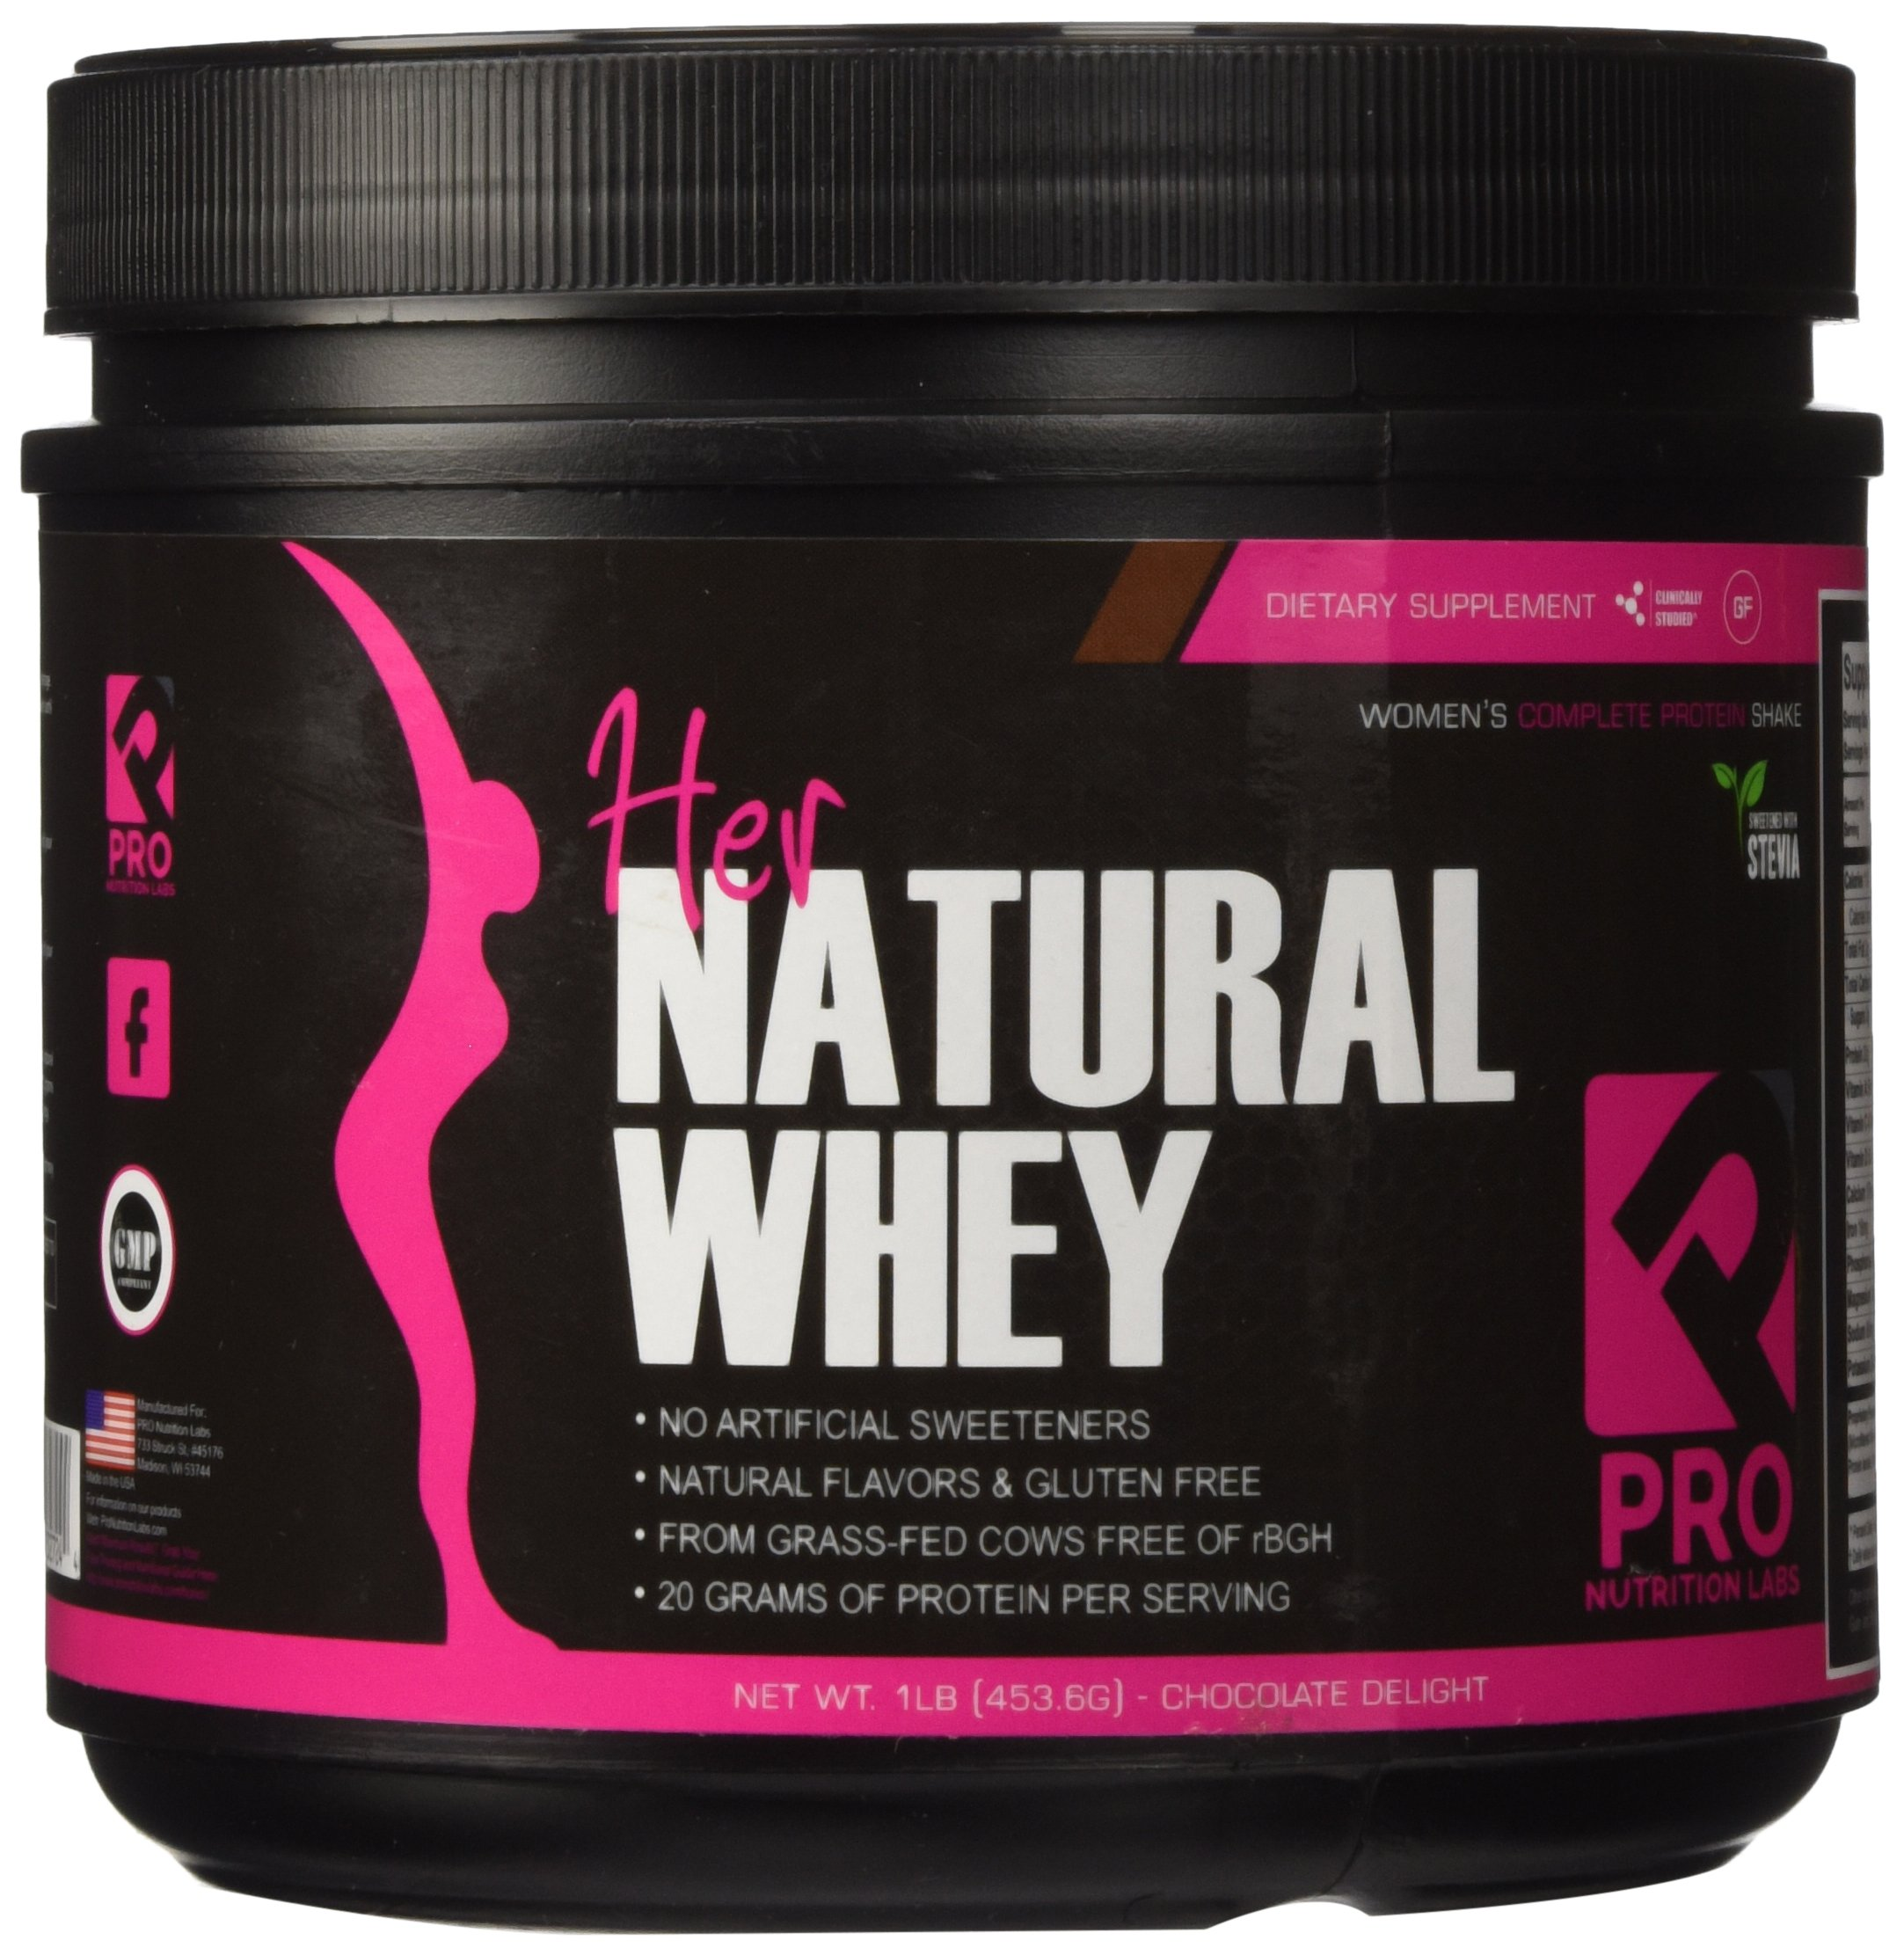 Protein Powder For Women - Her Natural Whey Protein Powder For Weight Loss & To Support Lean Muscle Mass - Low Carb - Gluten Free - rBGH Hormone Free - Naturally Sweetened with Stevia - Designed For Optimal Fat Loss (Chocolate Delight)- Net Wt. 1 LB by Pro Nutrition Labs (Image #2)